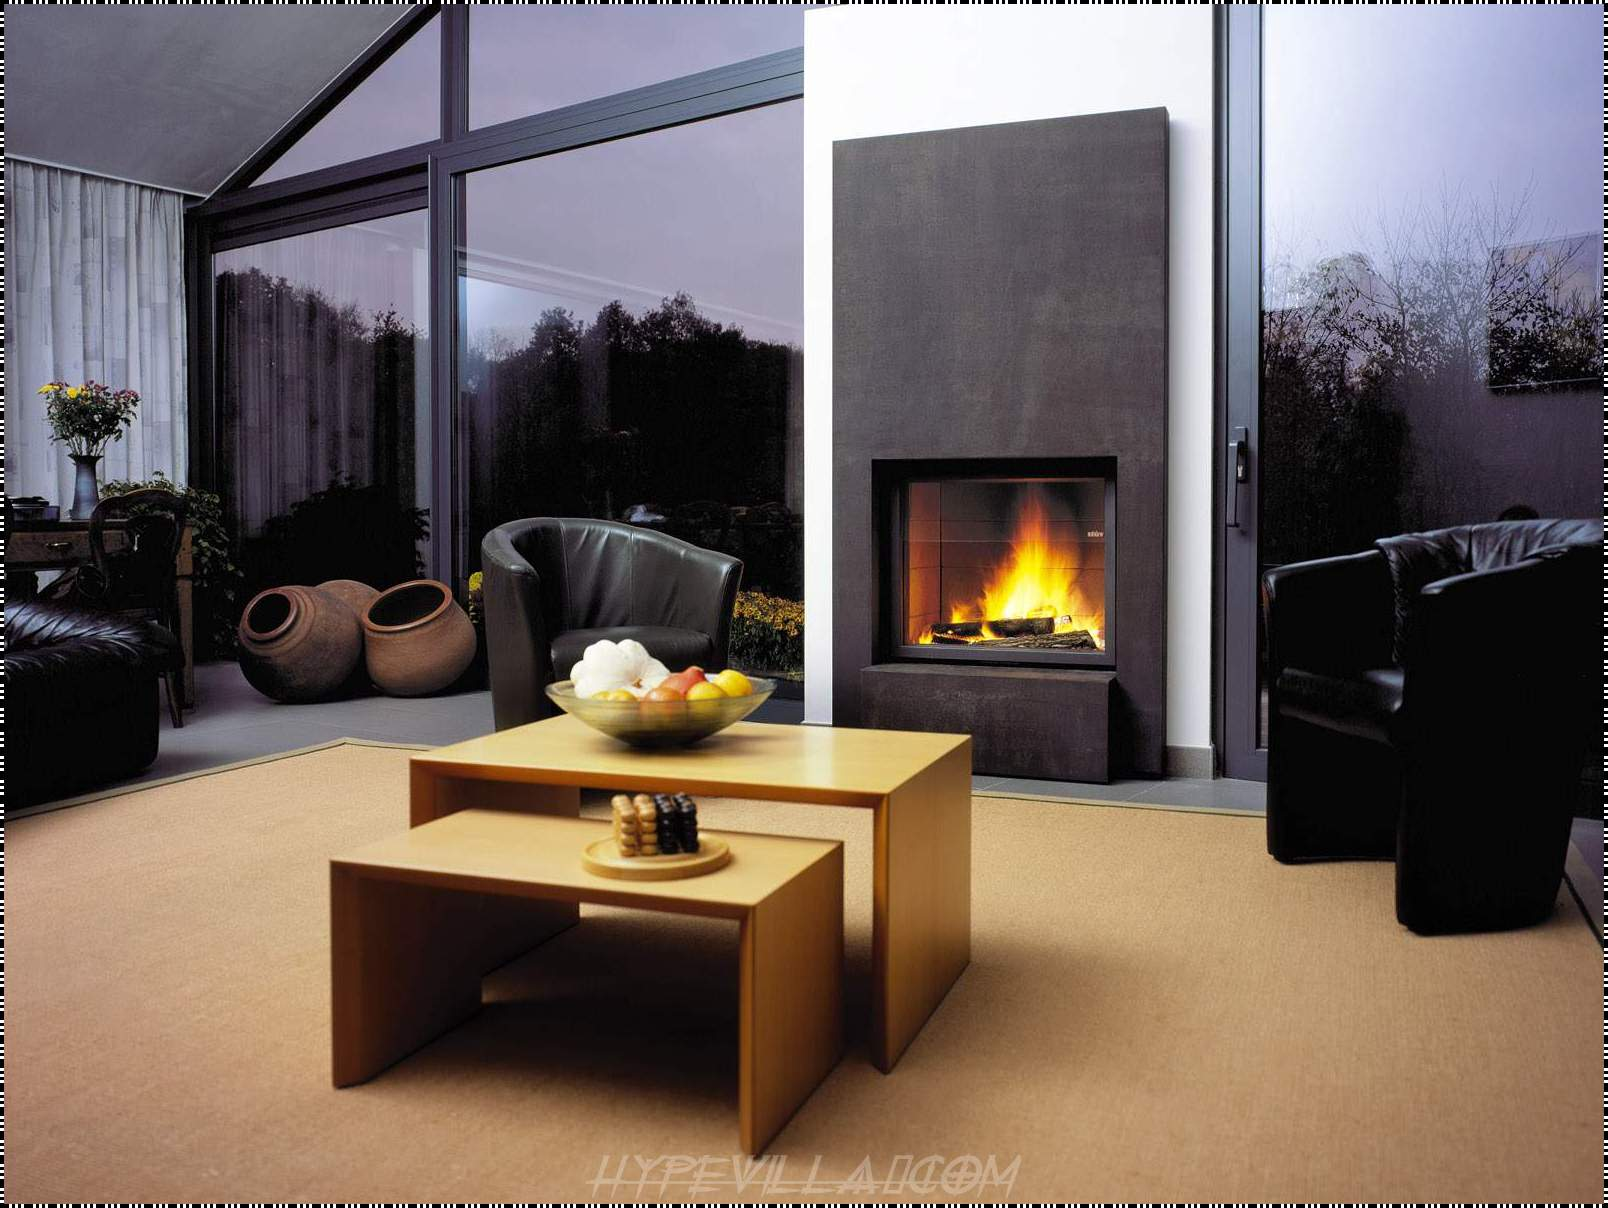 25 hot fireplace design ideas for your house Home decorating ideas living room with fireplace